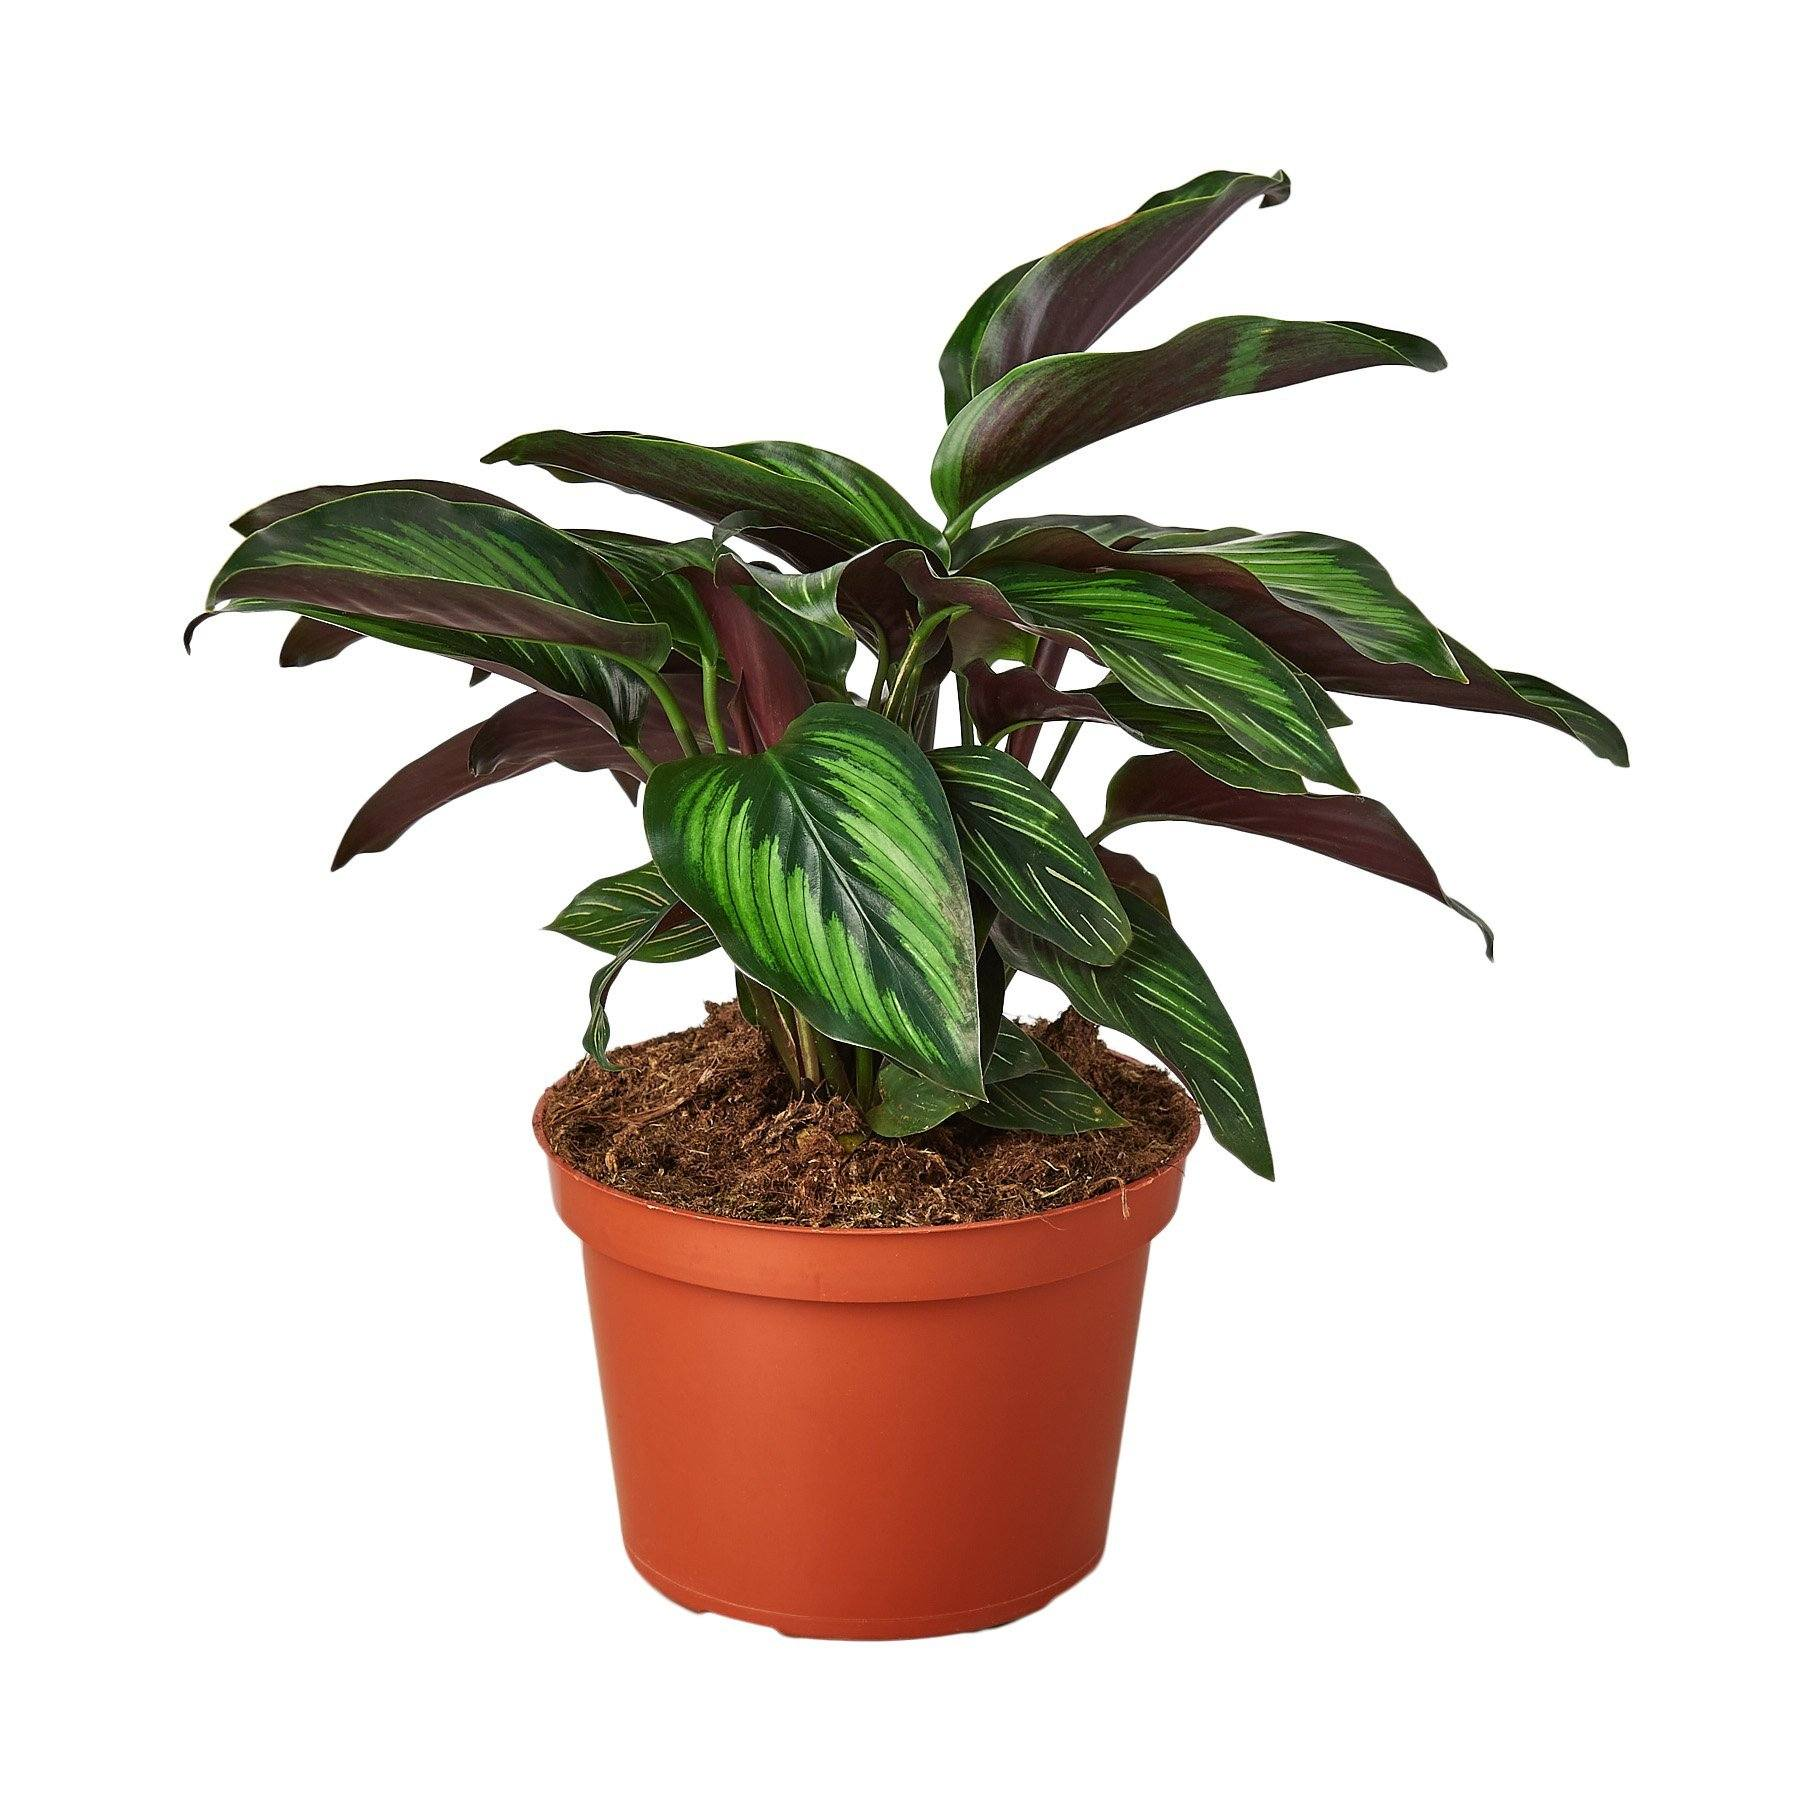 "Calathea 'Beauty Star' Indoor Plants House Plant Shop 6"" Pot"